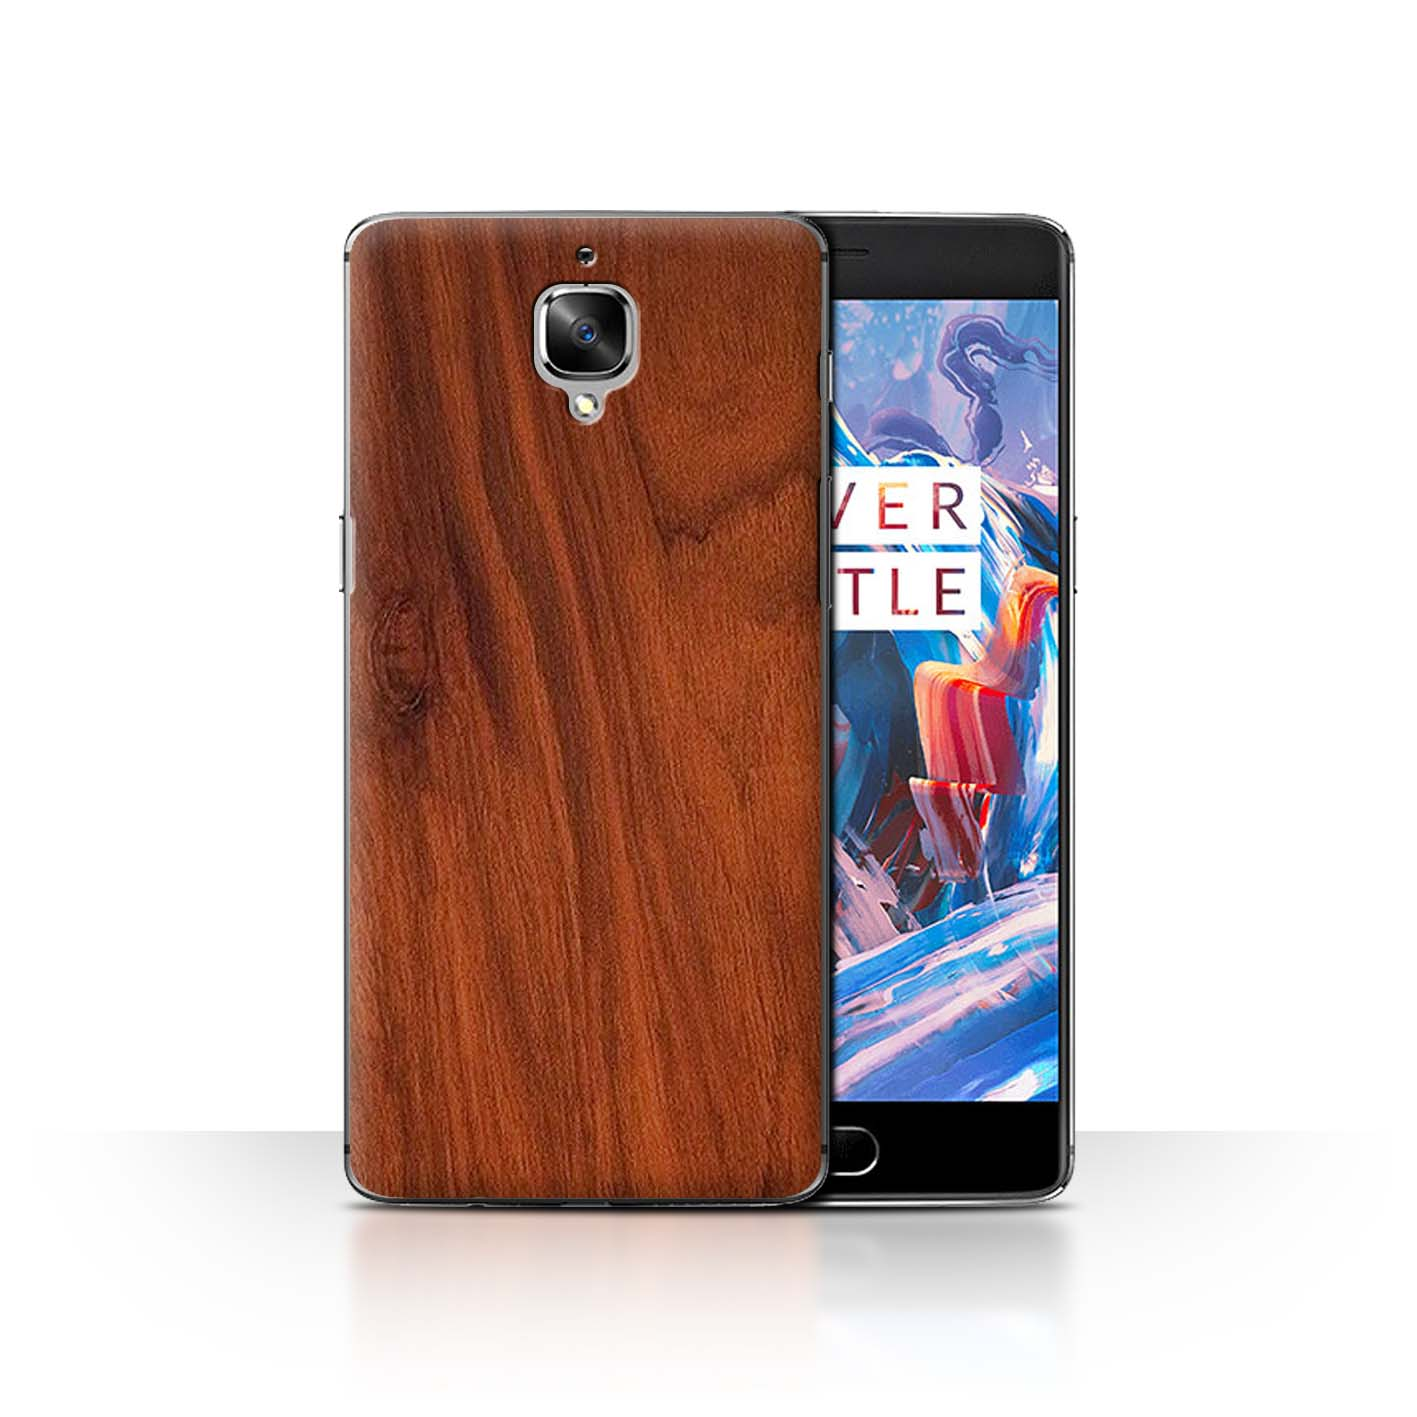 new styles 99ba7 4cb23 Details about STUFF4 Back Case/Cover/Skin for OnePlus 3/3T/Wood Grain  Effect/Pattern